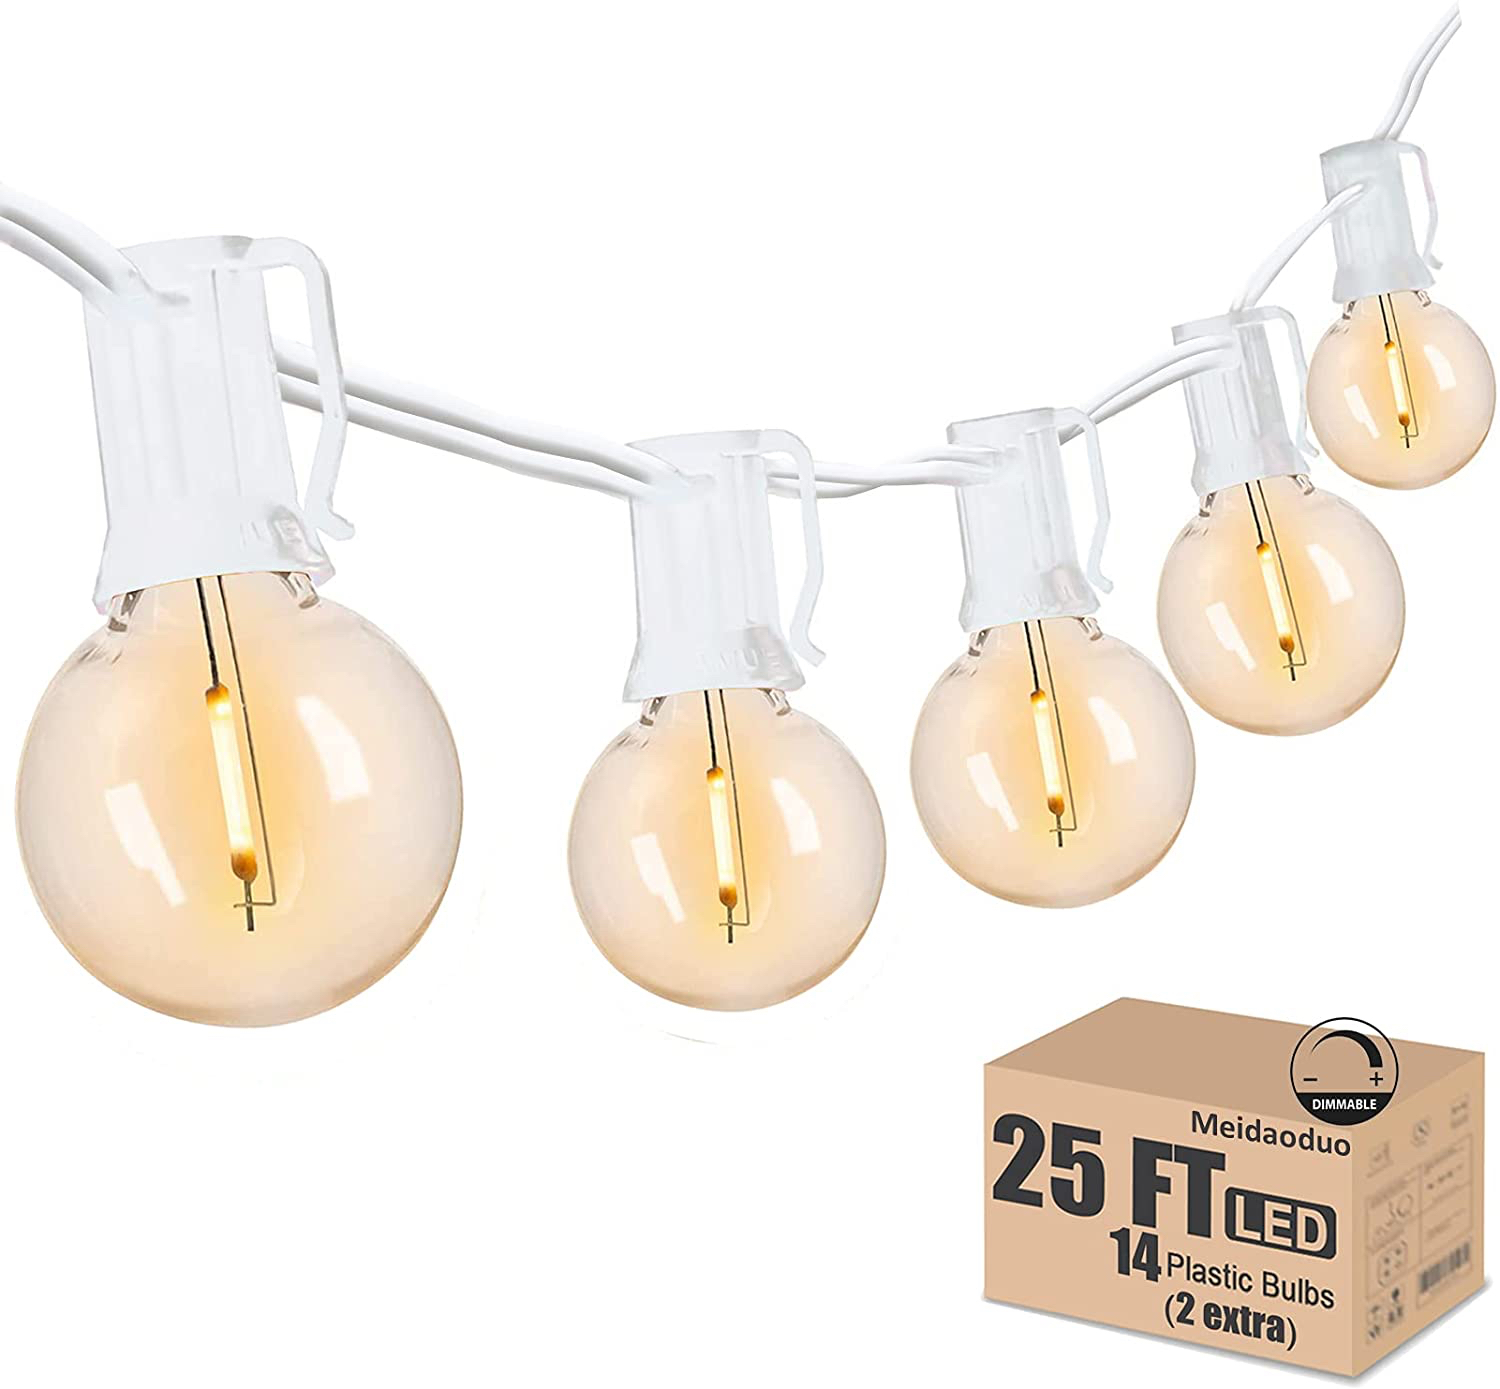 Meidaoduo Globe LED String Lights in White